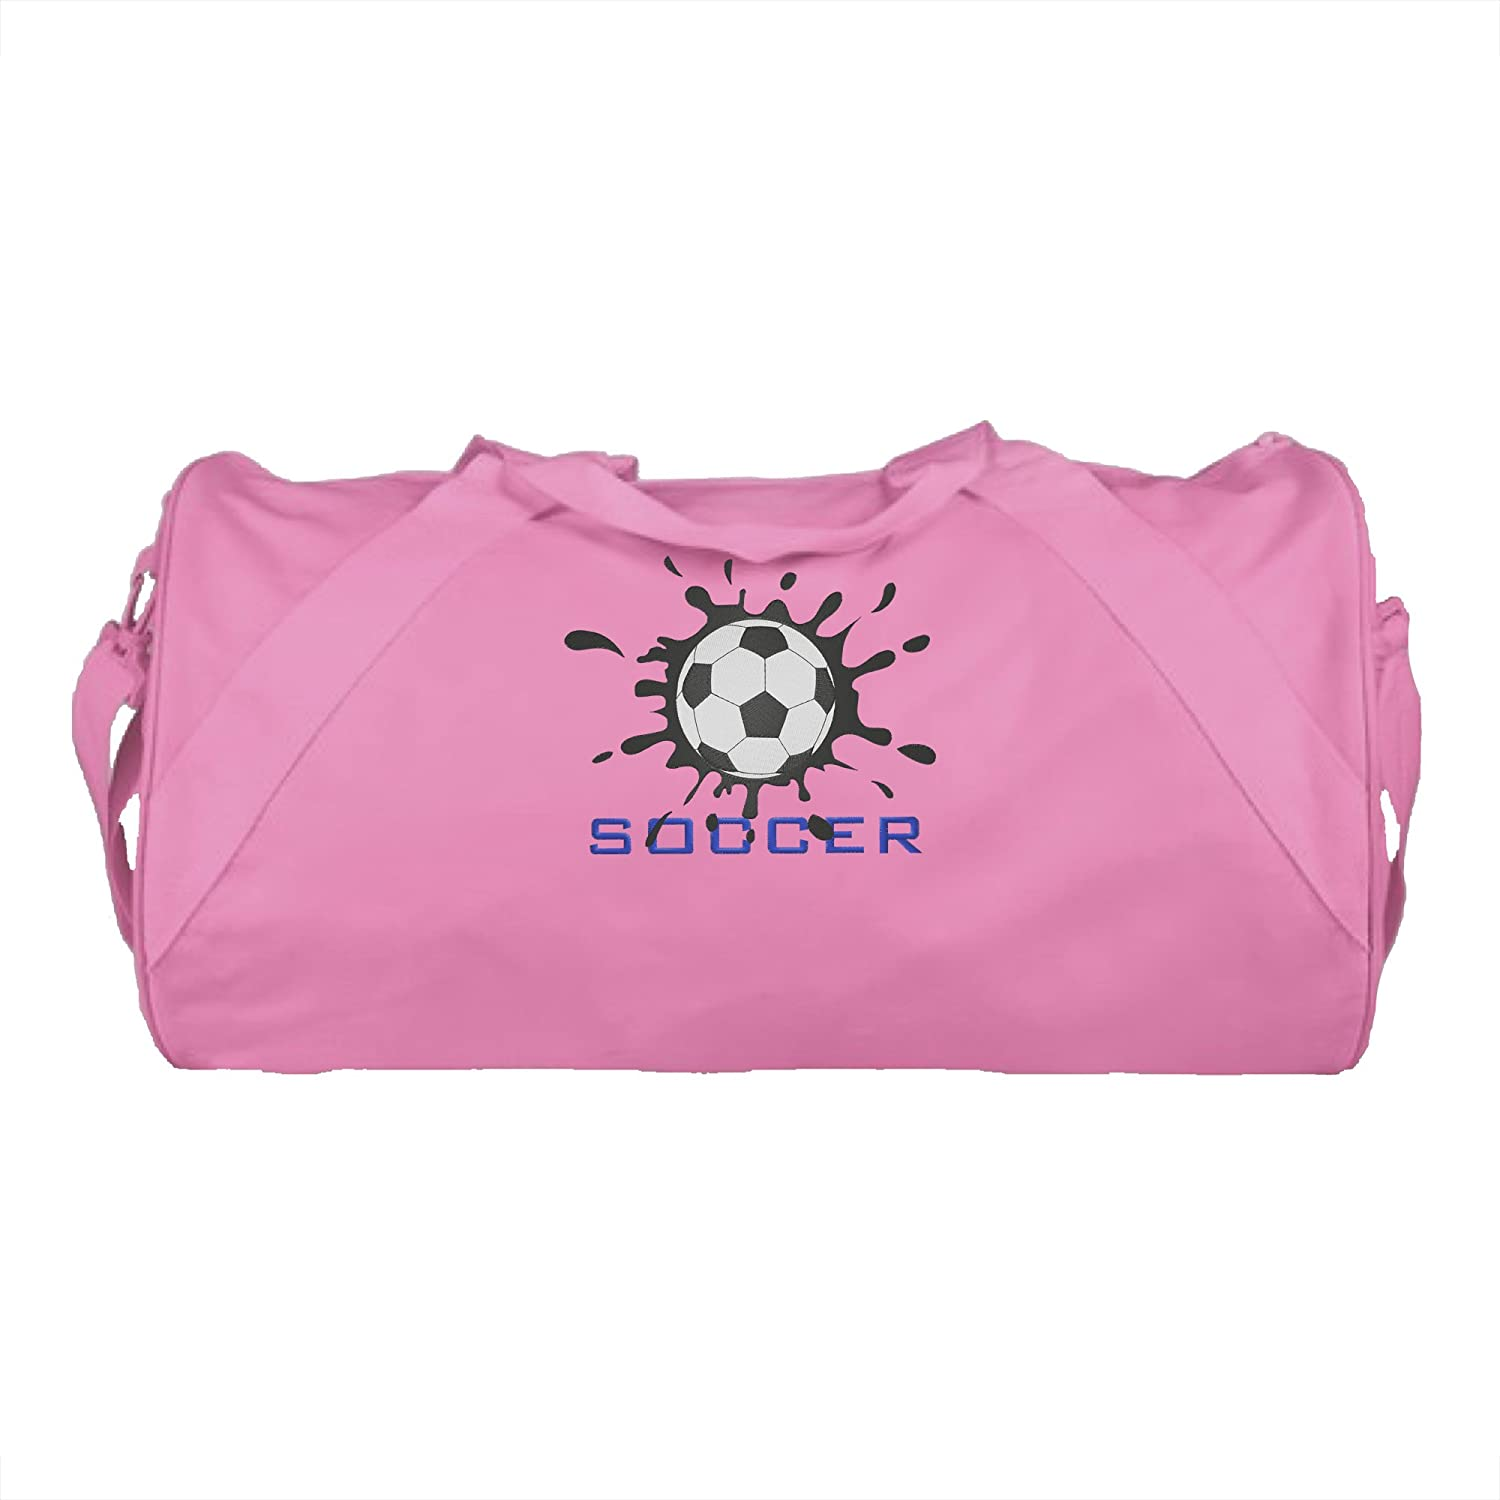 QUALITY Durable Duffel Name Soccer Splat Design Personalized Embroidered